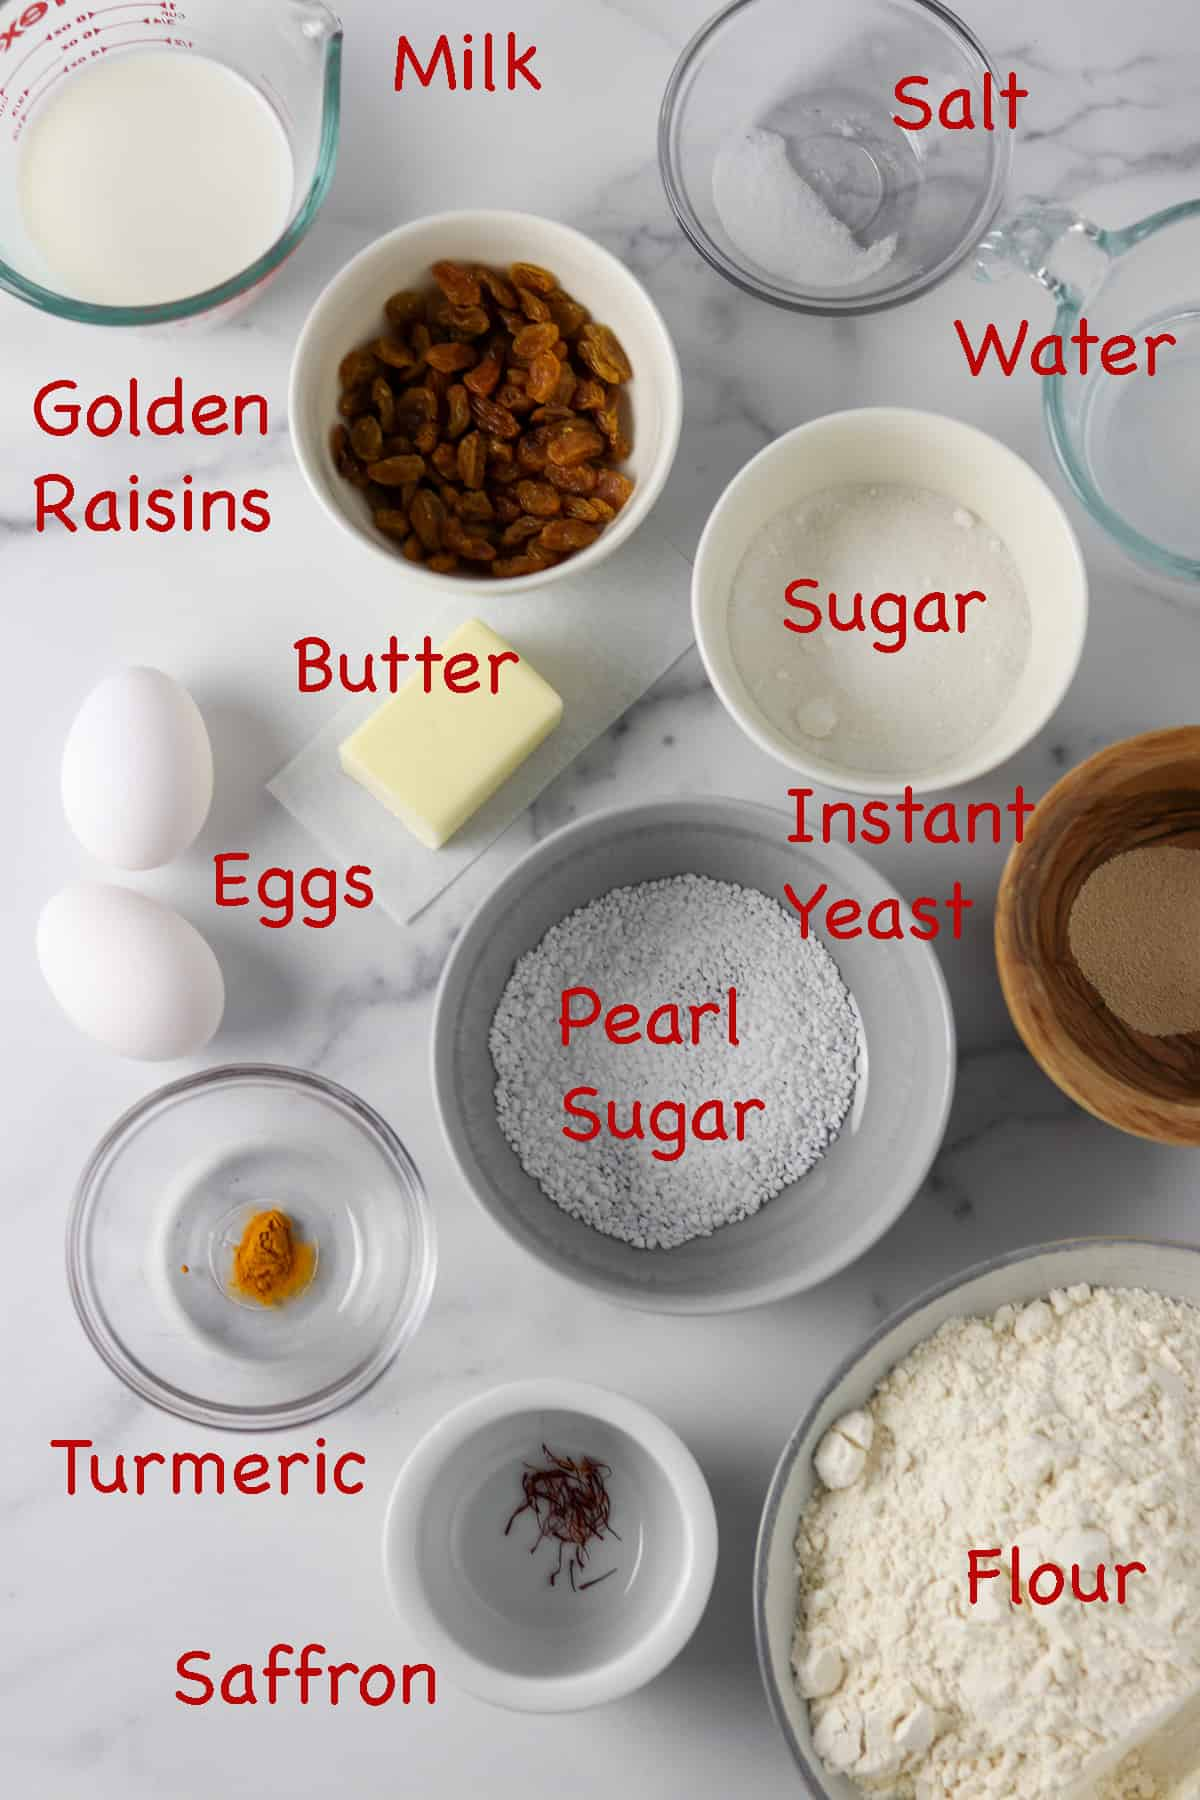 Labeled ingredients for St. Lucia Buns.